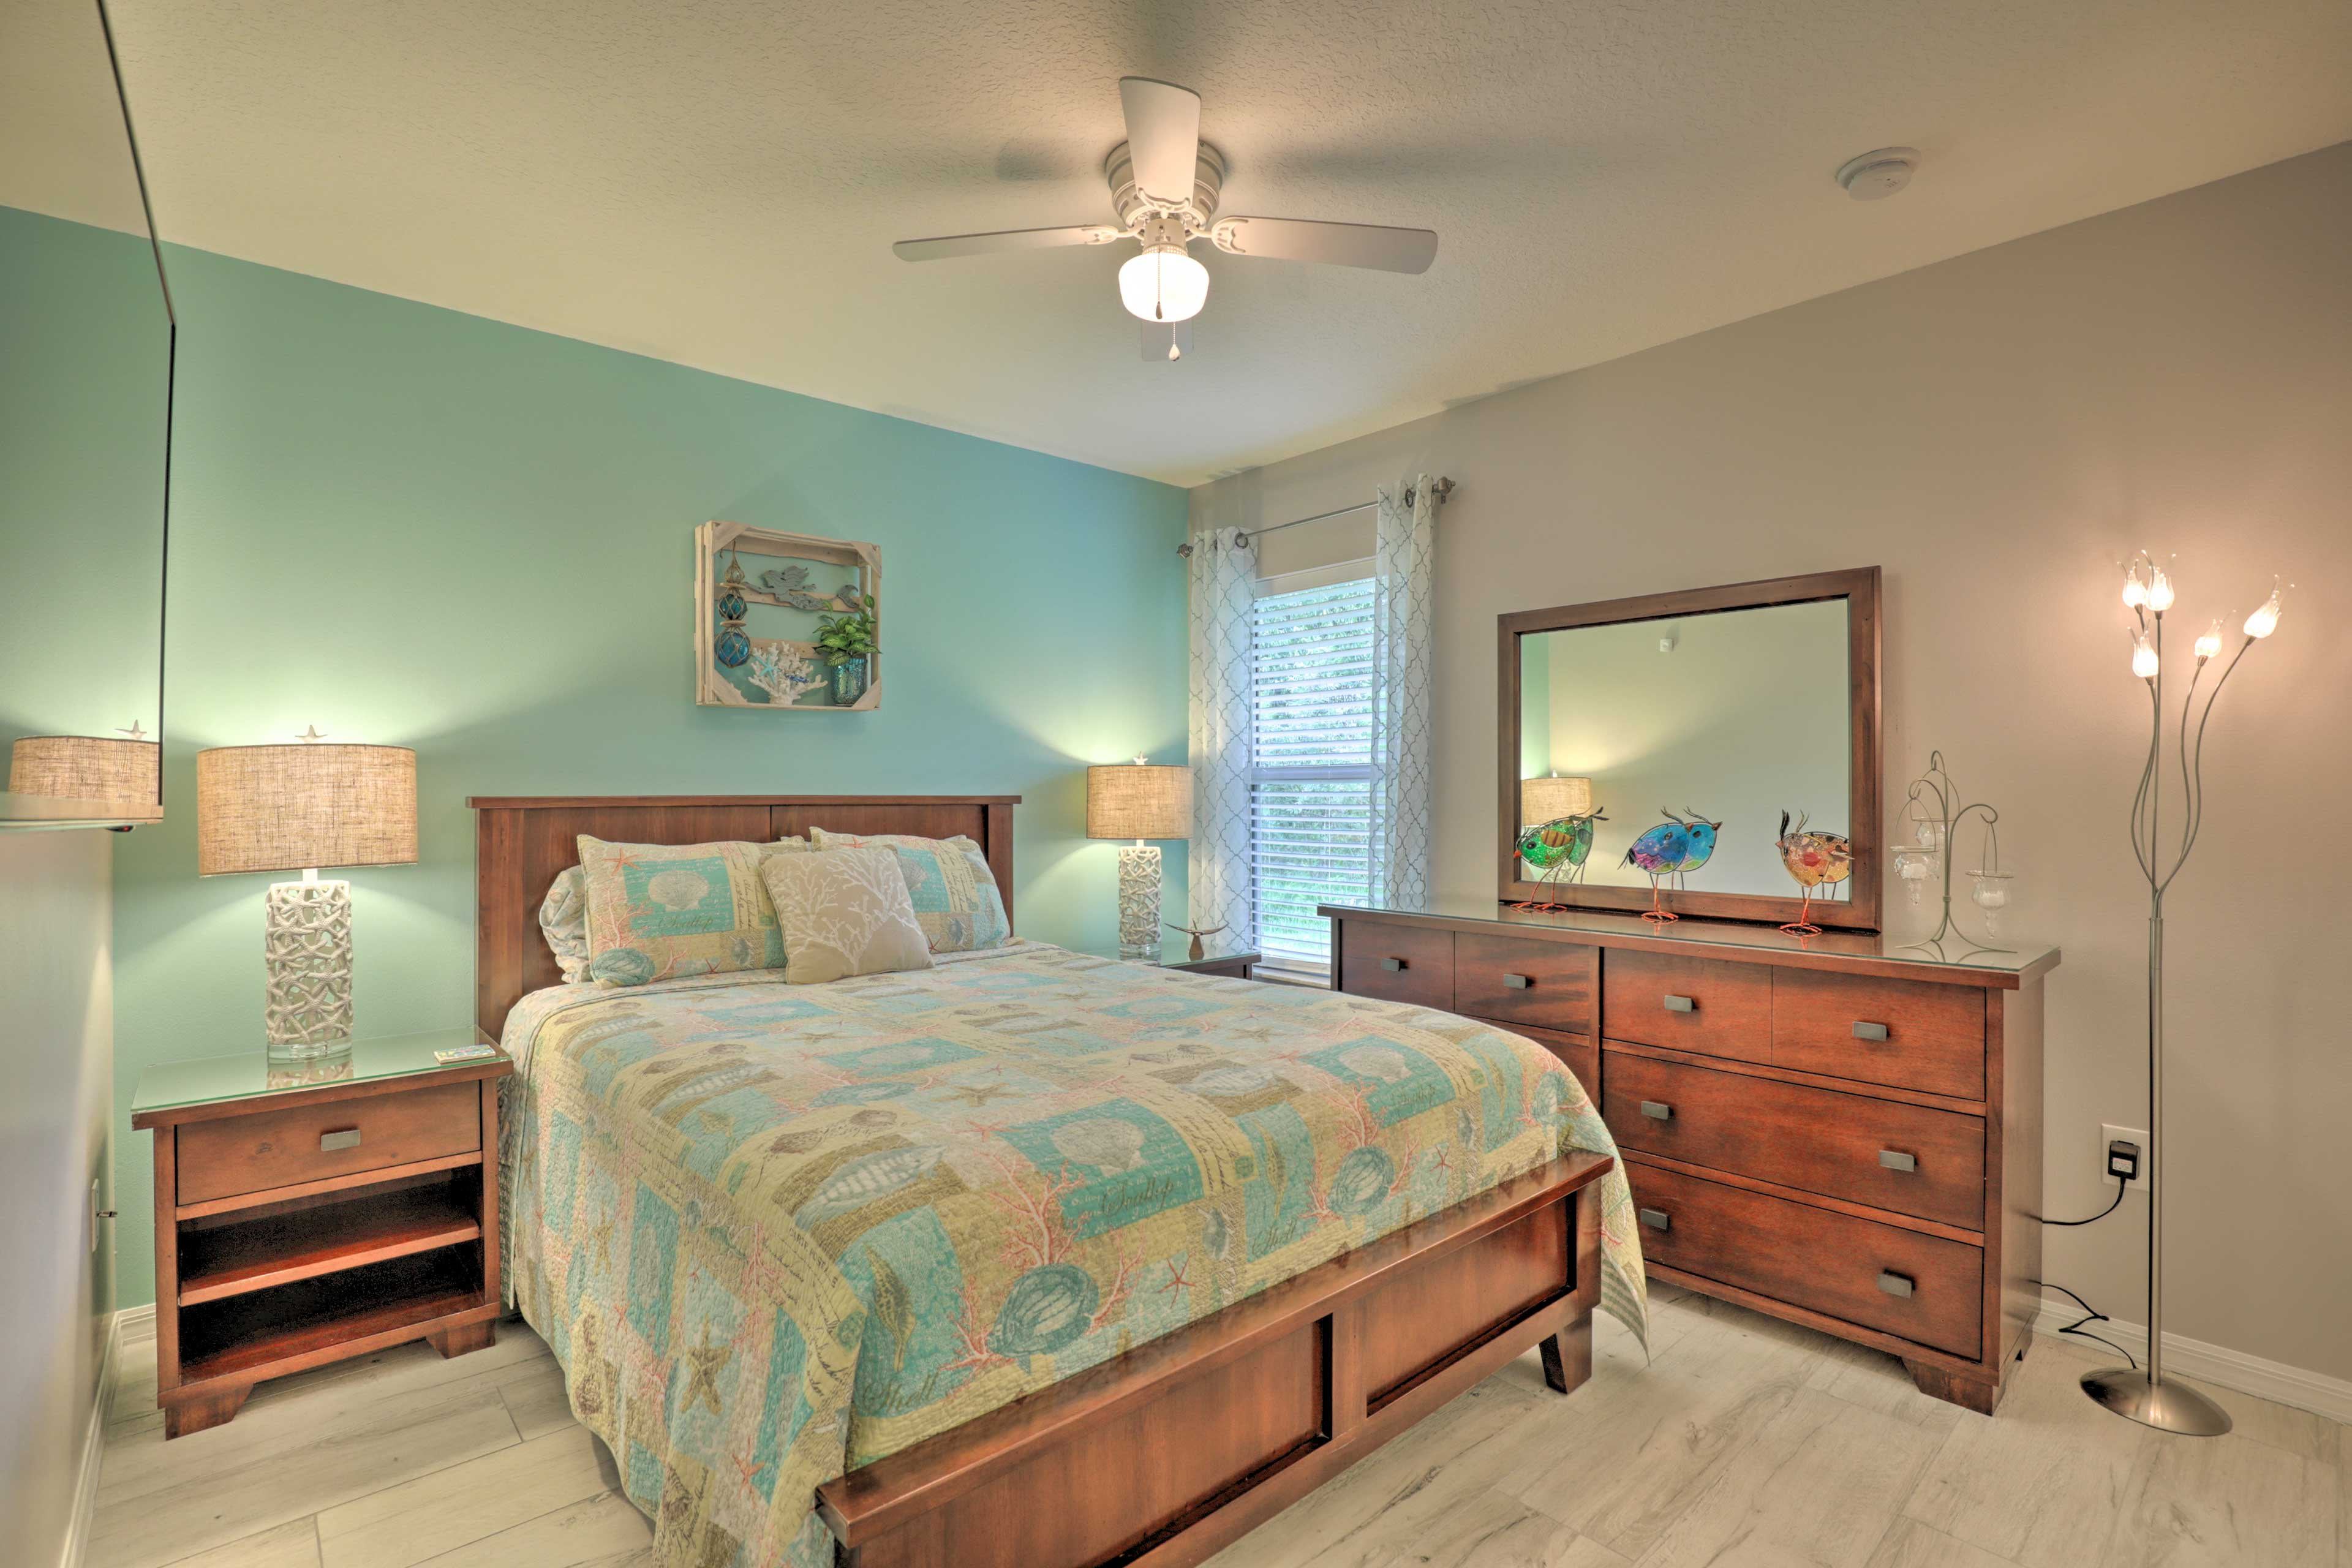 The fourth bedroom is also equipped with a queen bed.